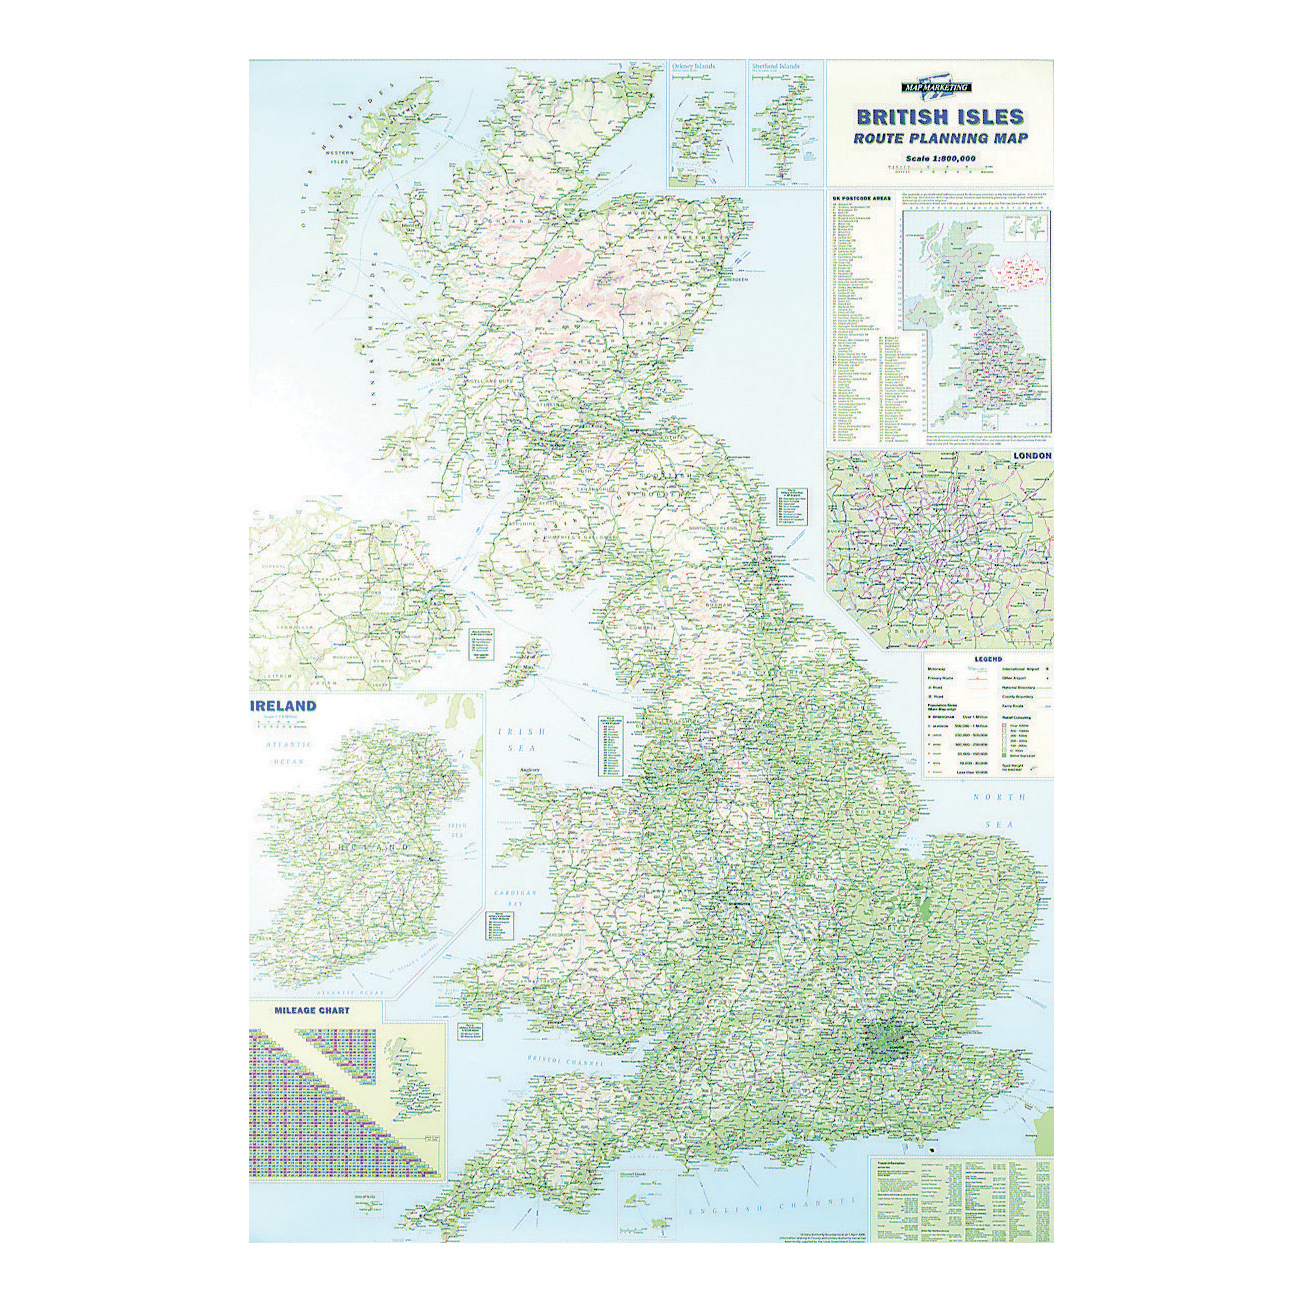 Wall Maps Map Marketing British Isles Motoring Map Unframed 12.5 Miles to 1 inch Scale W830xH1200mm Ref BIM